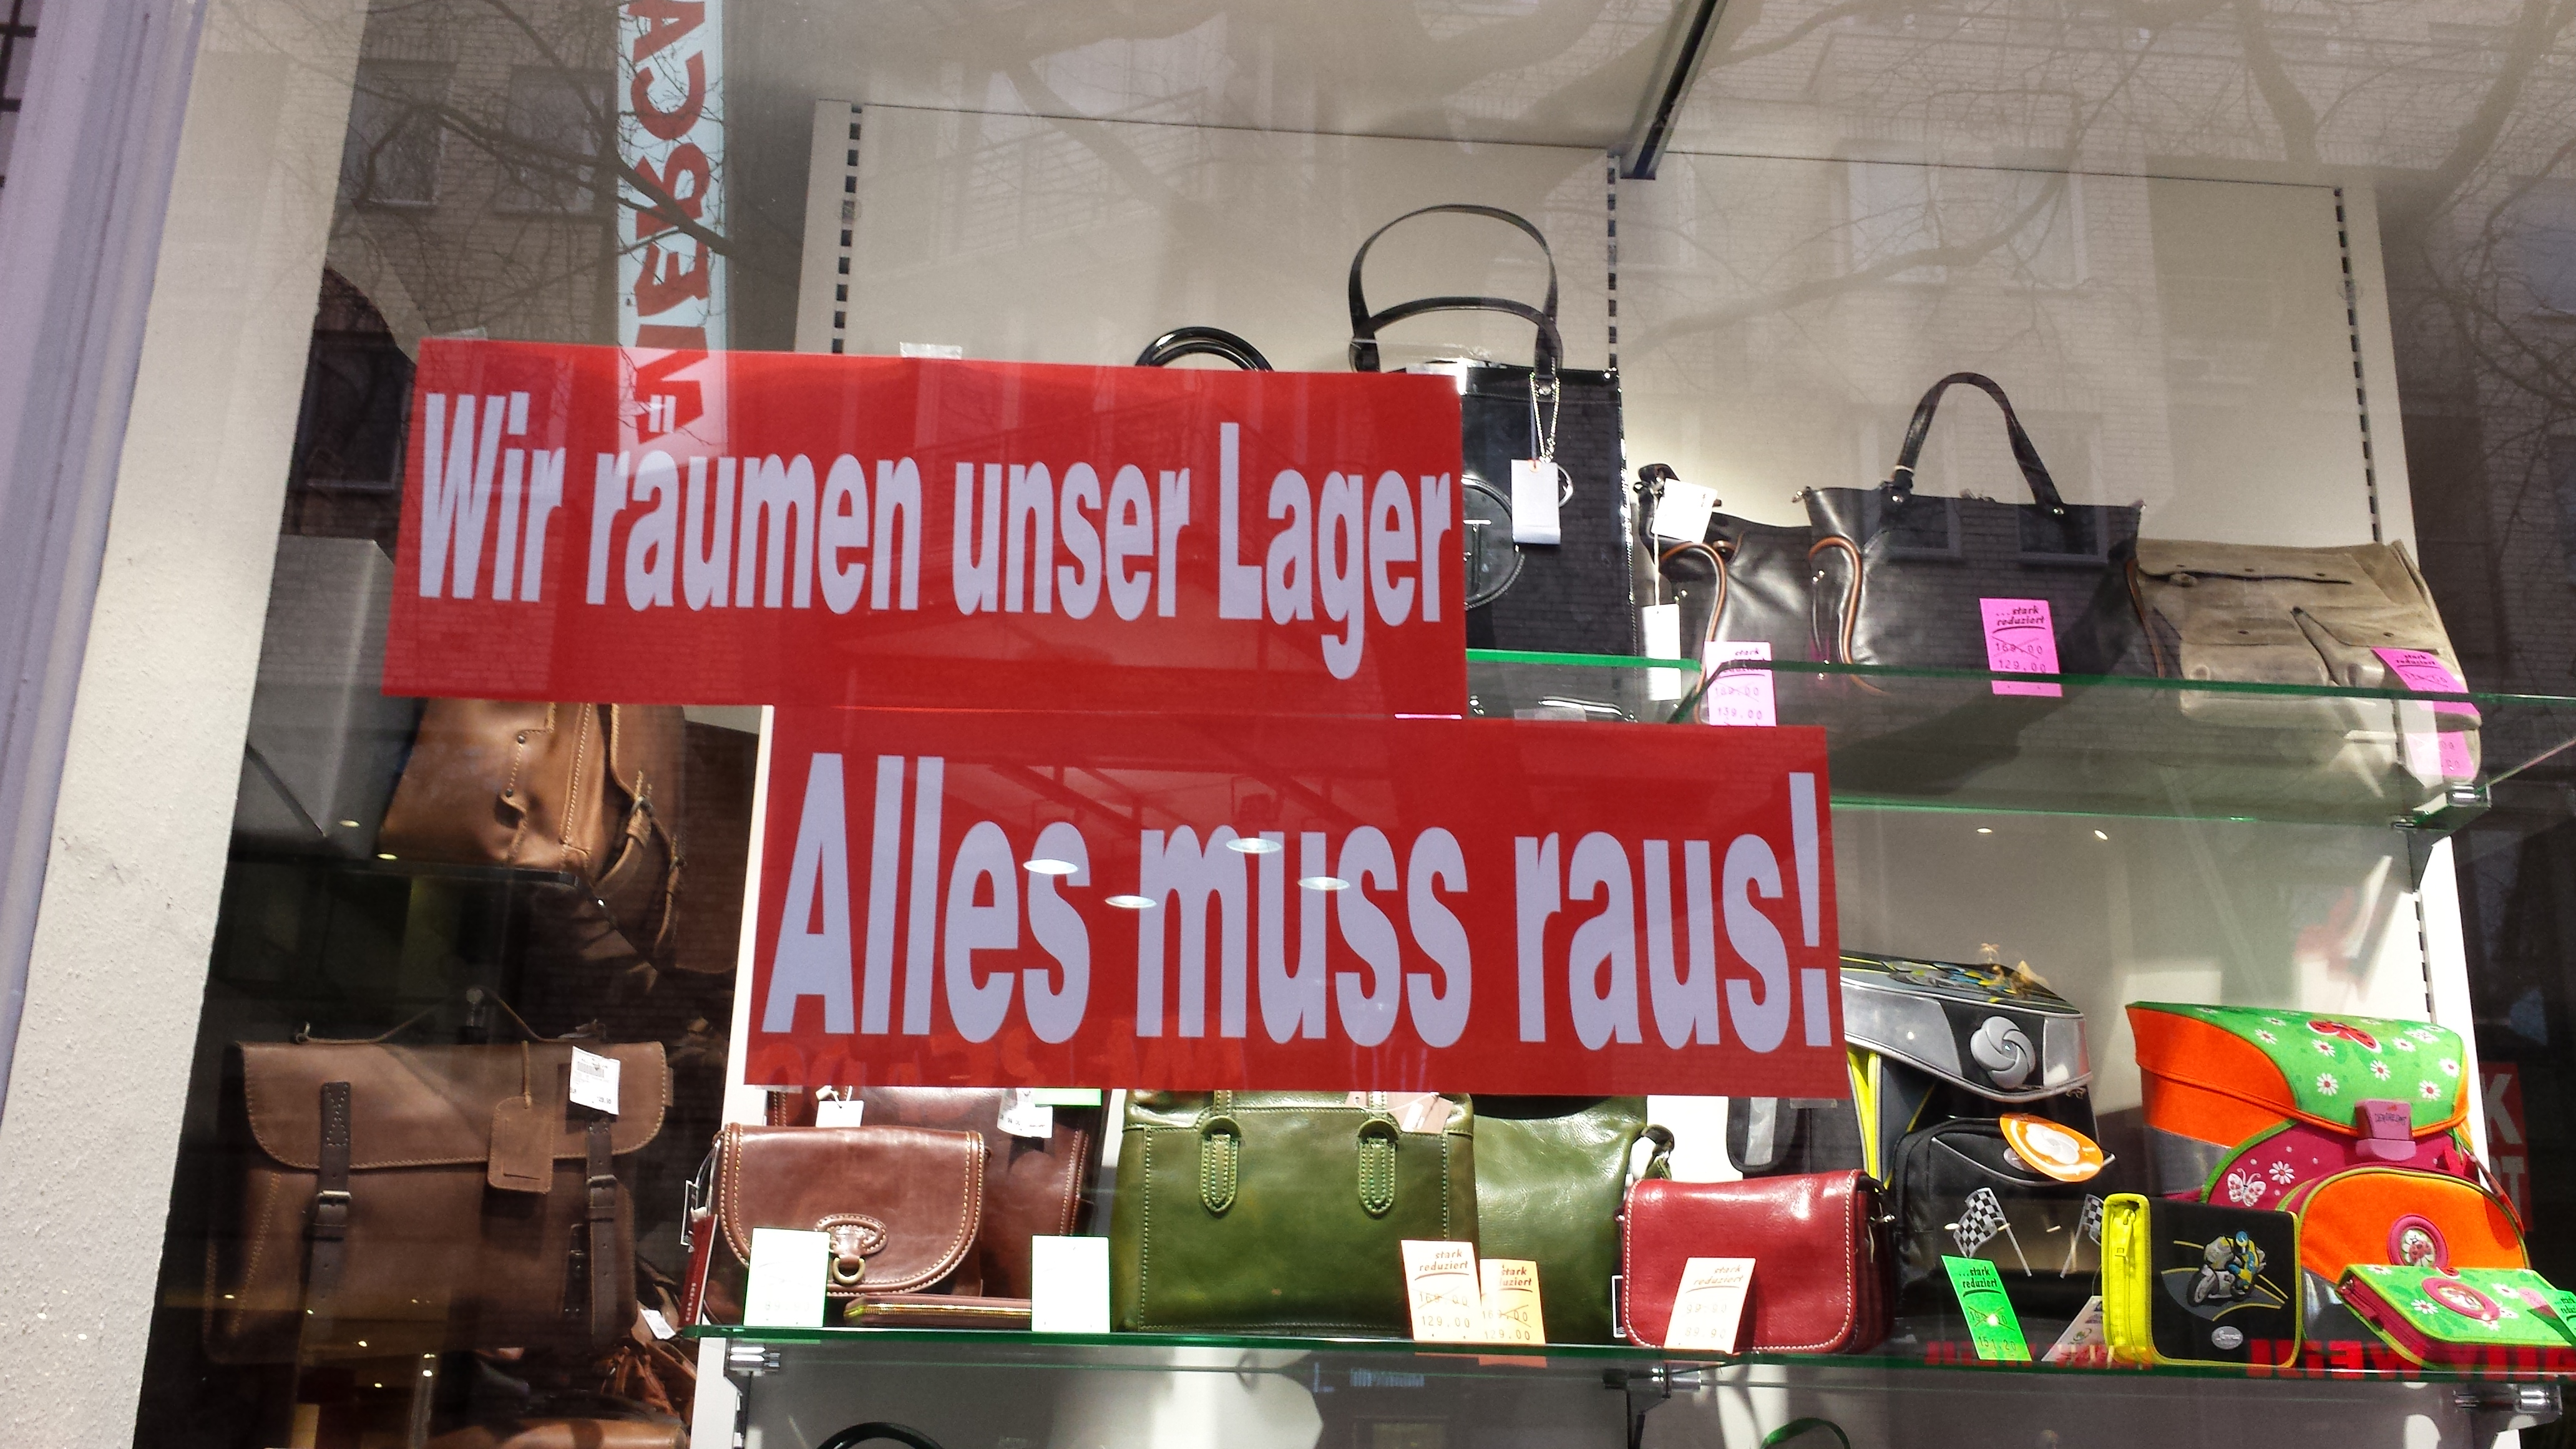 Lager-Alles_muss_raus